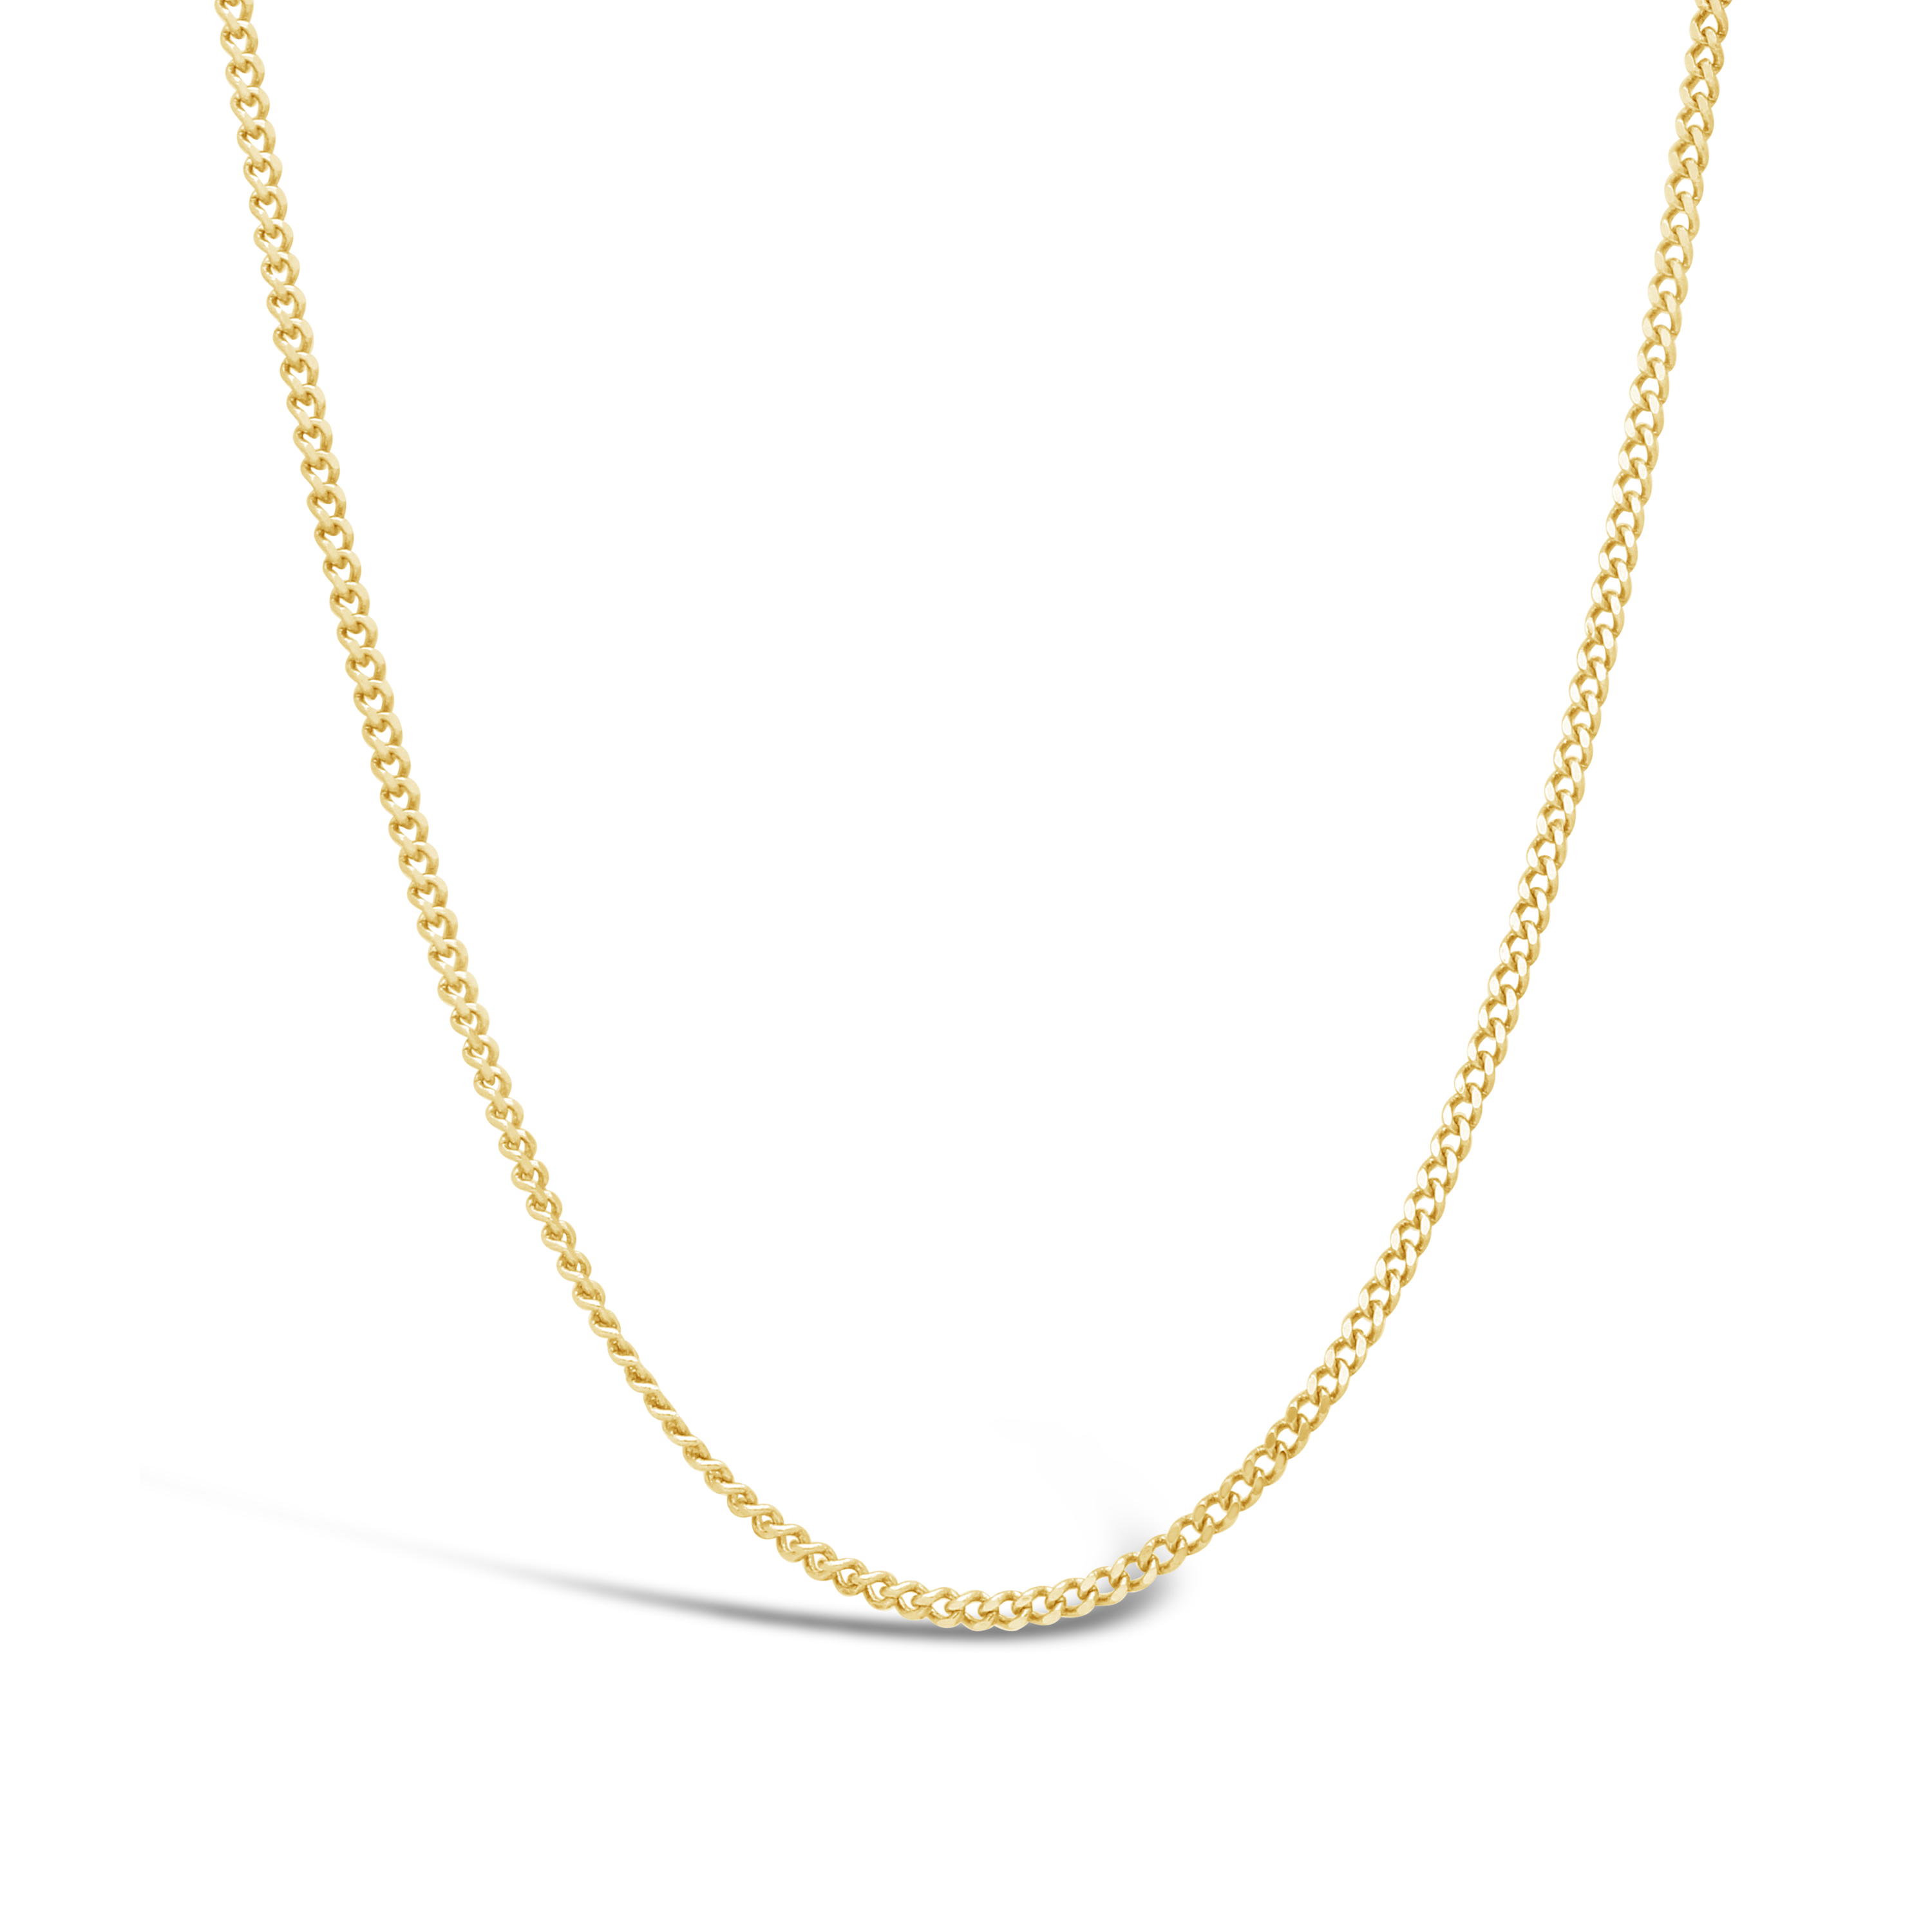 98ee310341a2 9ct Gold 40cm Curb Link Chain - NWJ